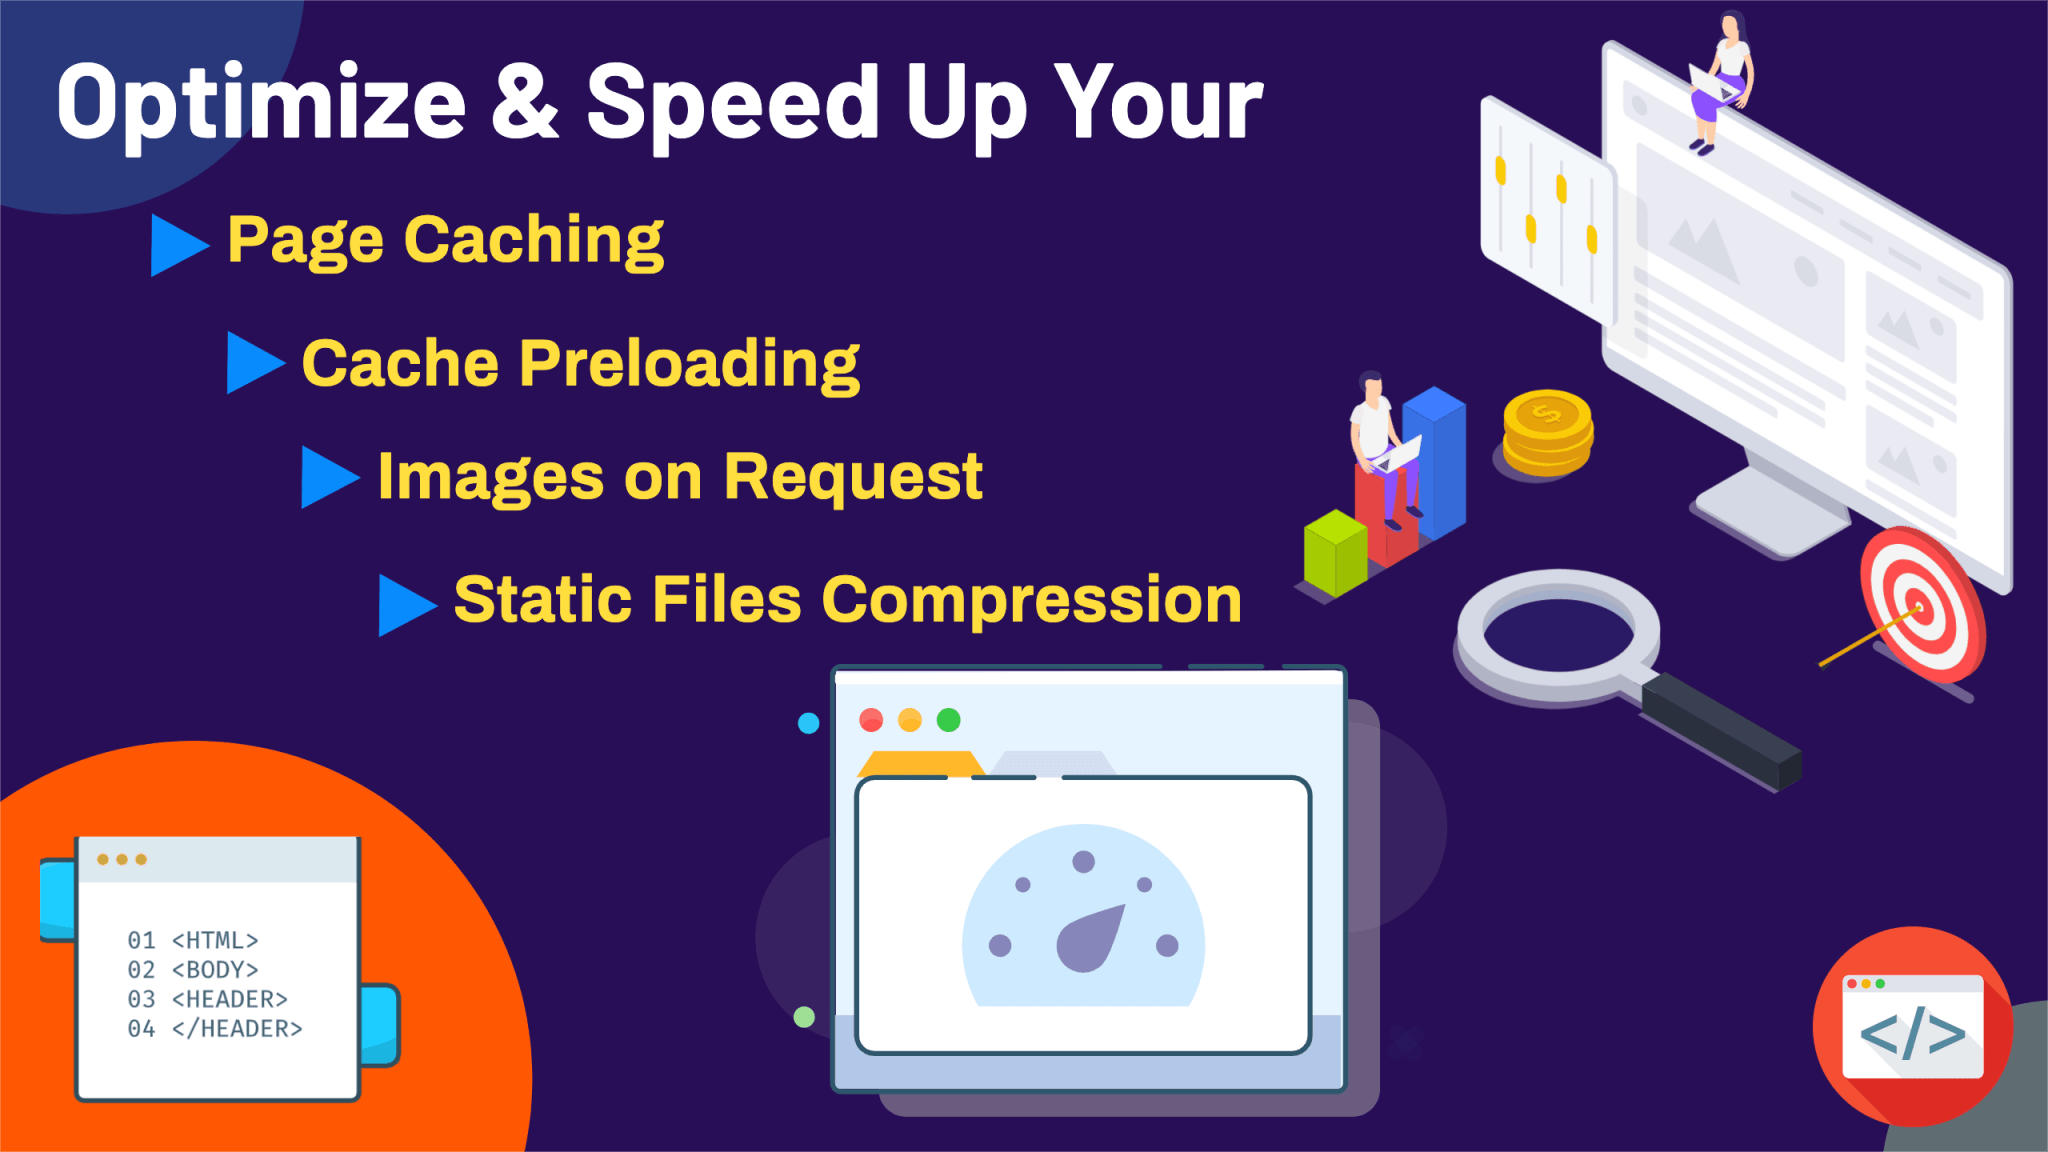 Optimize & Speed Up Your Website - 1280 x 720 px (1)